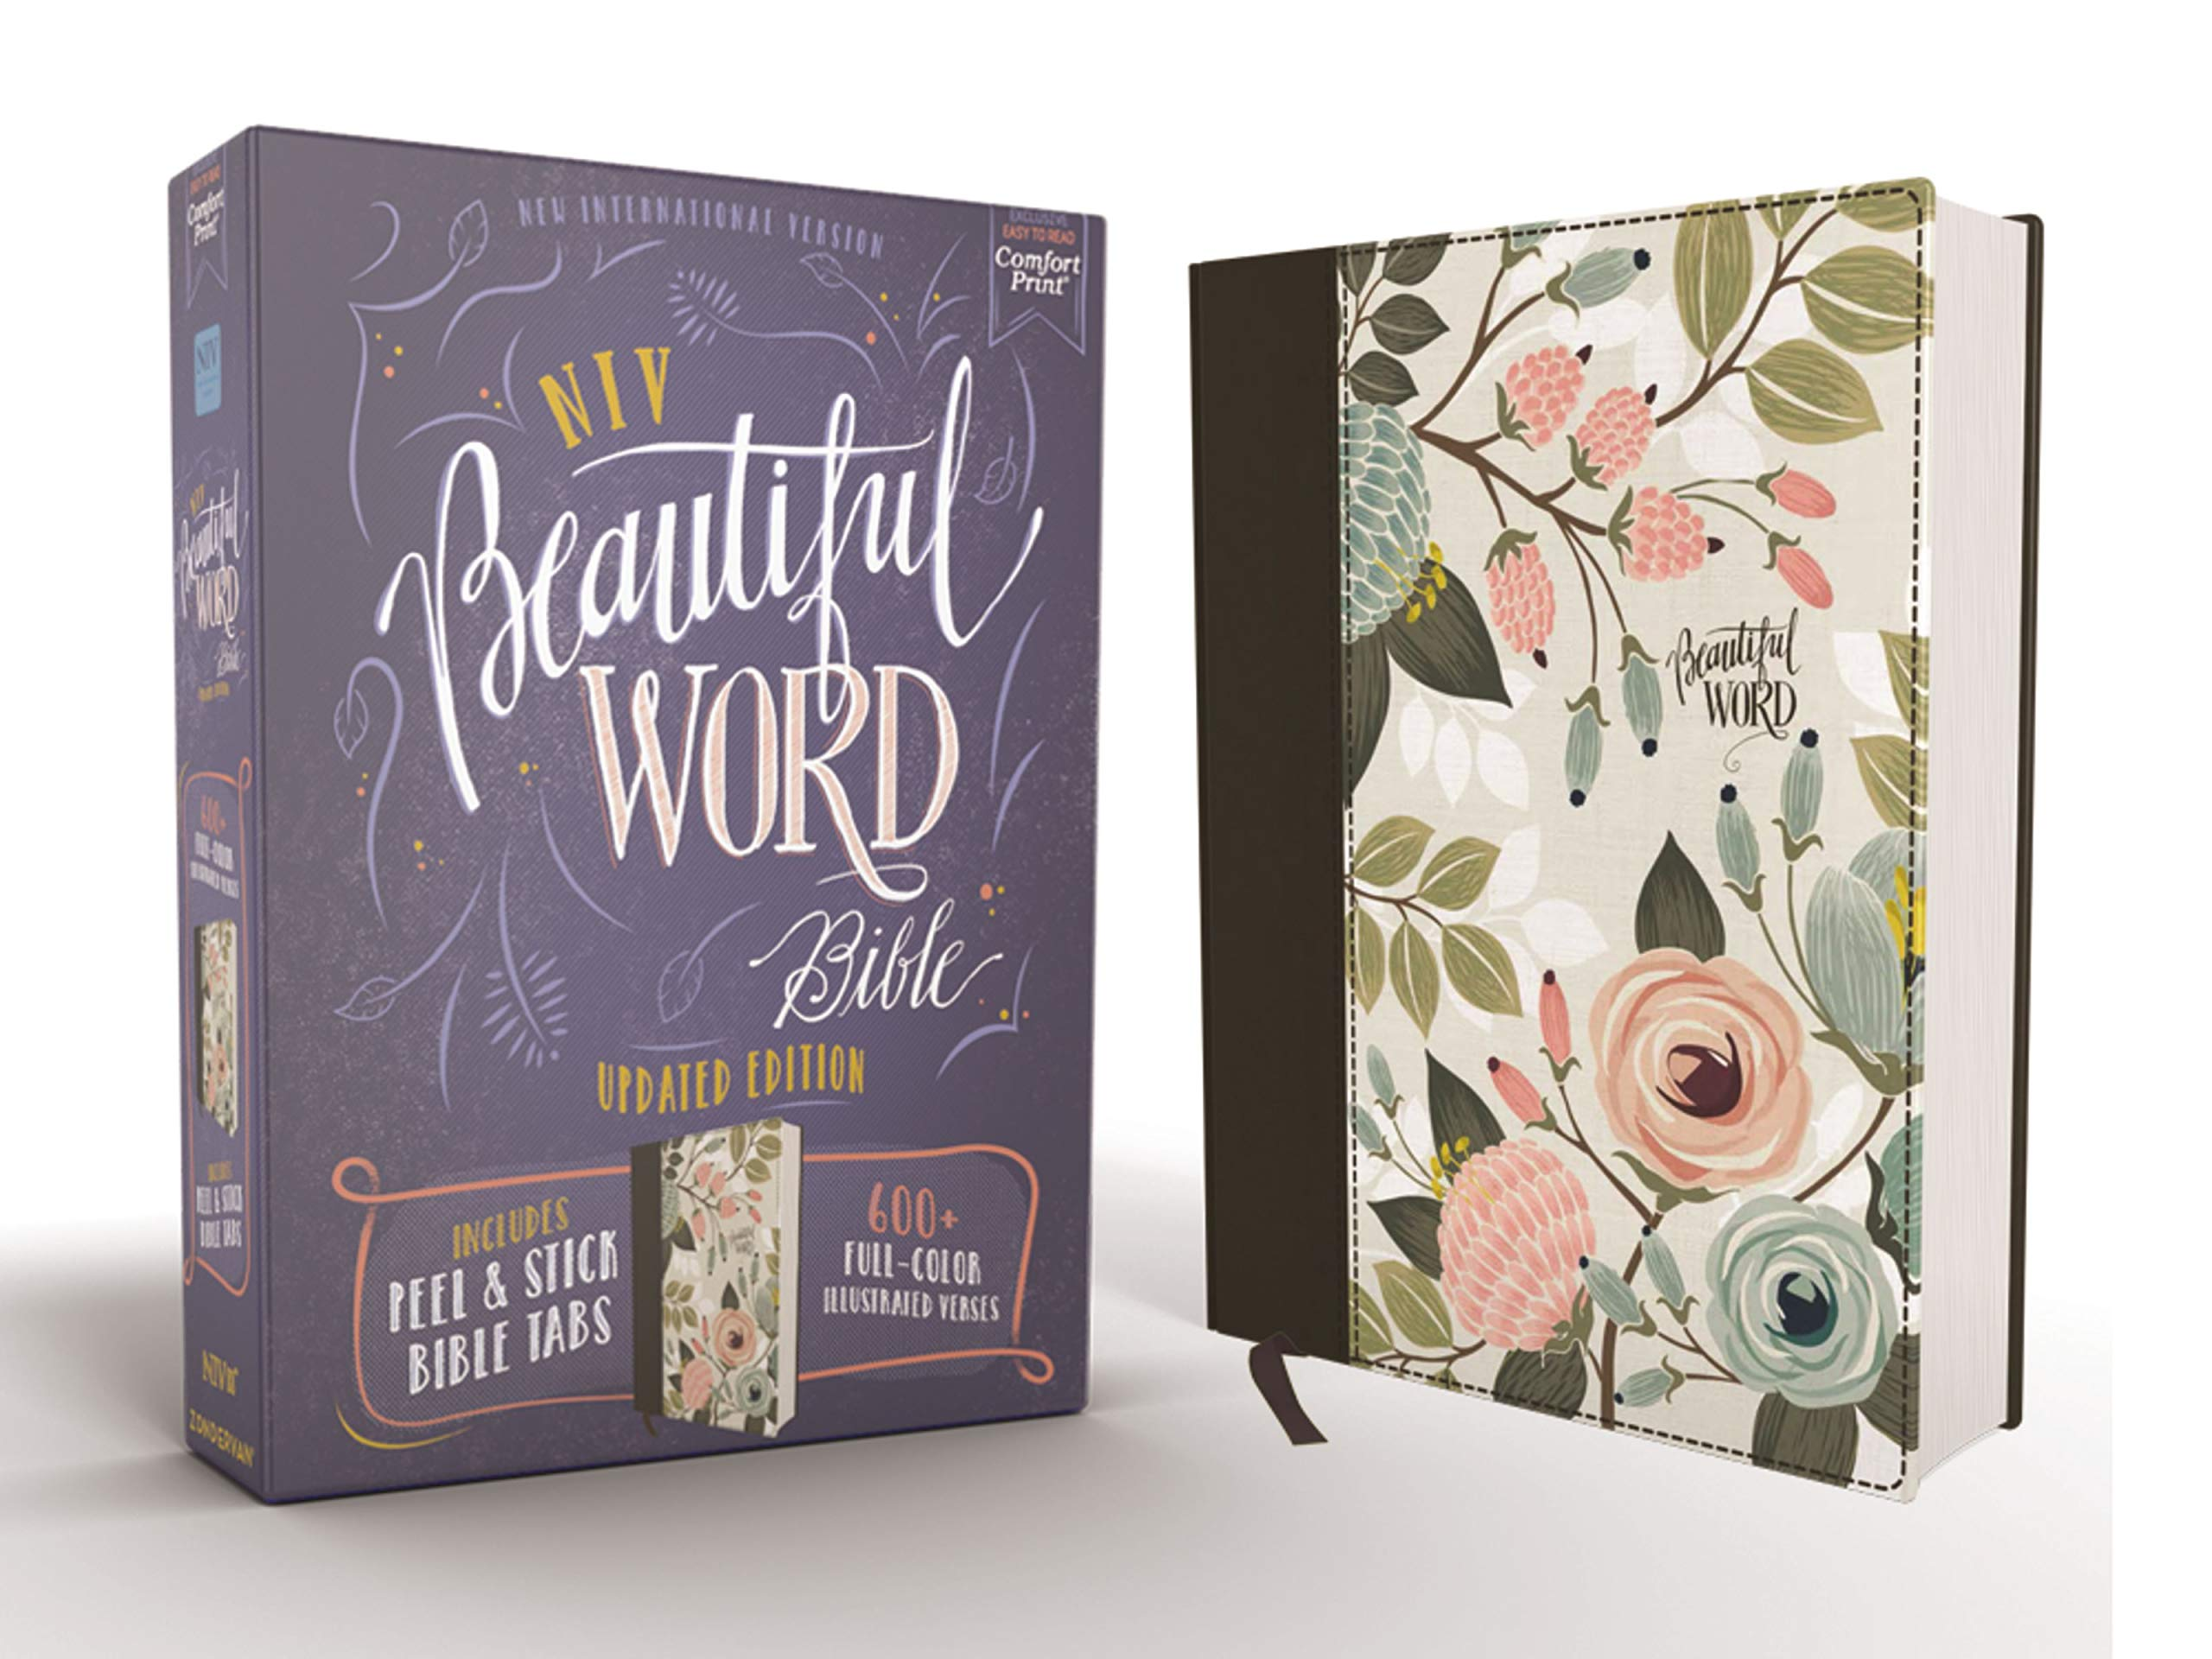 NIV, Beautiful Word Bible, Updated Edition, Peel/Stick Bible Tabs, Cloth over Board, Floral, Red Letter, Comfort Print: 600+ Full-Color Illustrated Verses by HarperCollins Christian Pub.